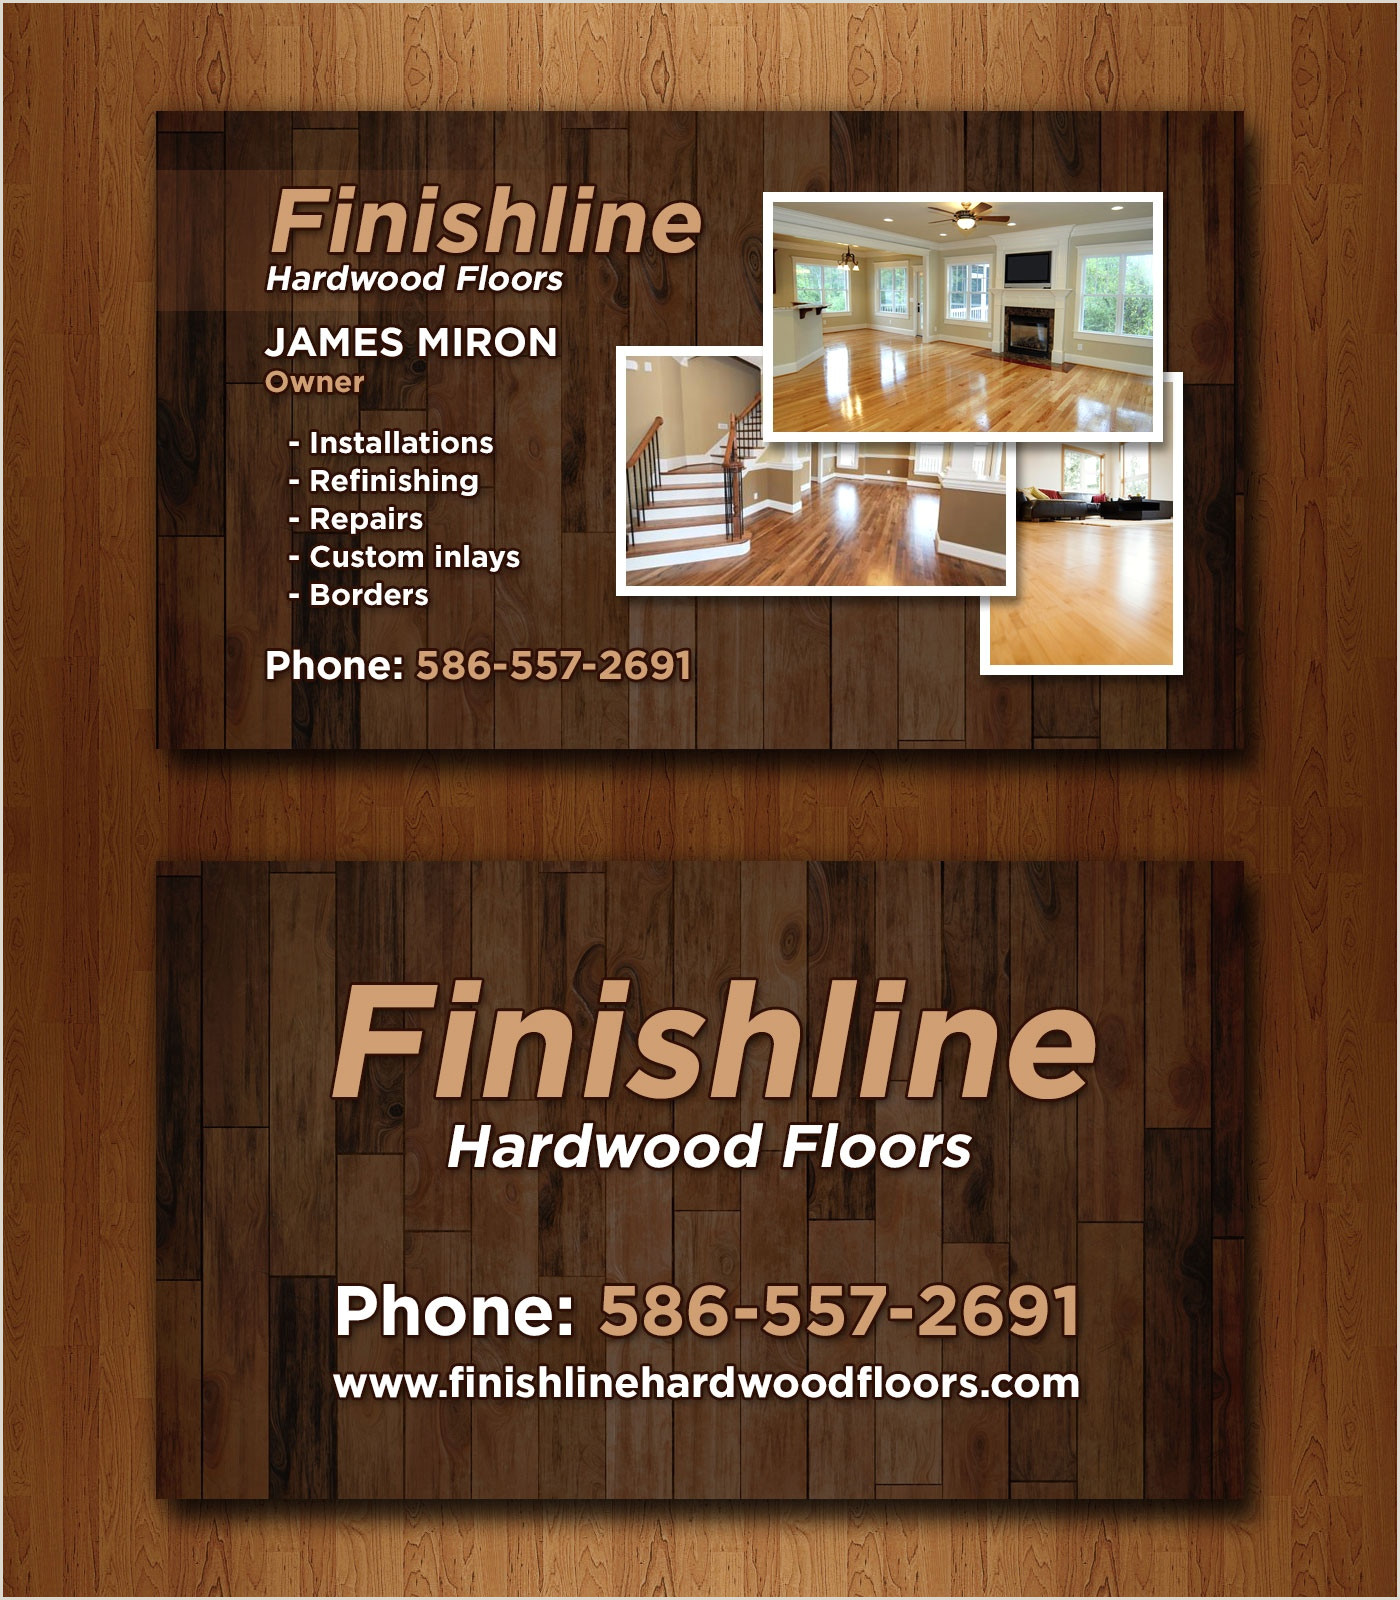 Awesome Business Cards 14 Popular Hardwood Flooring Business Card Template